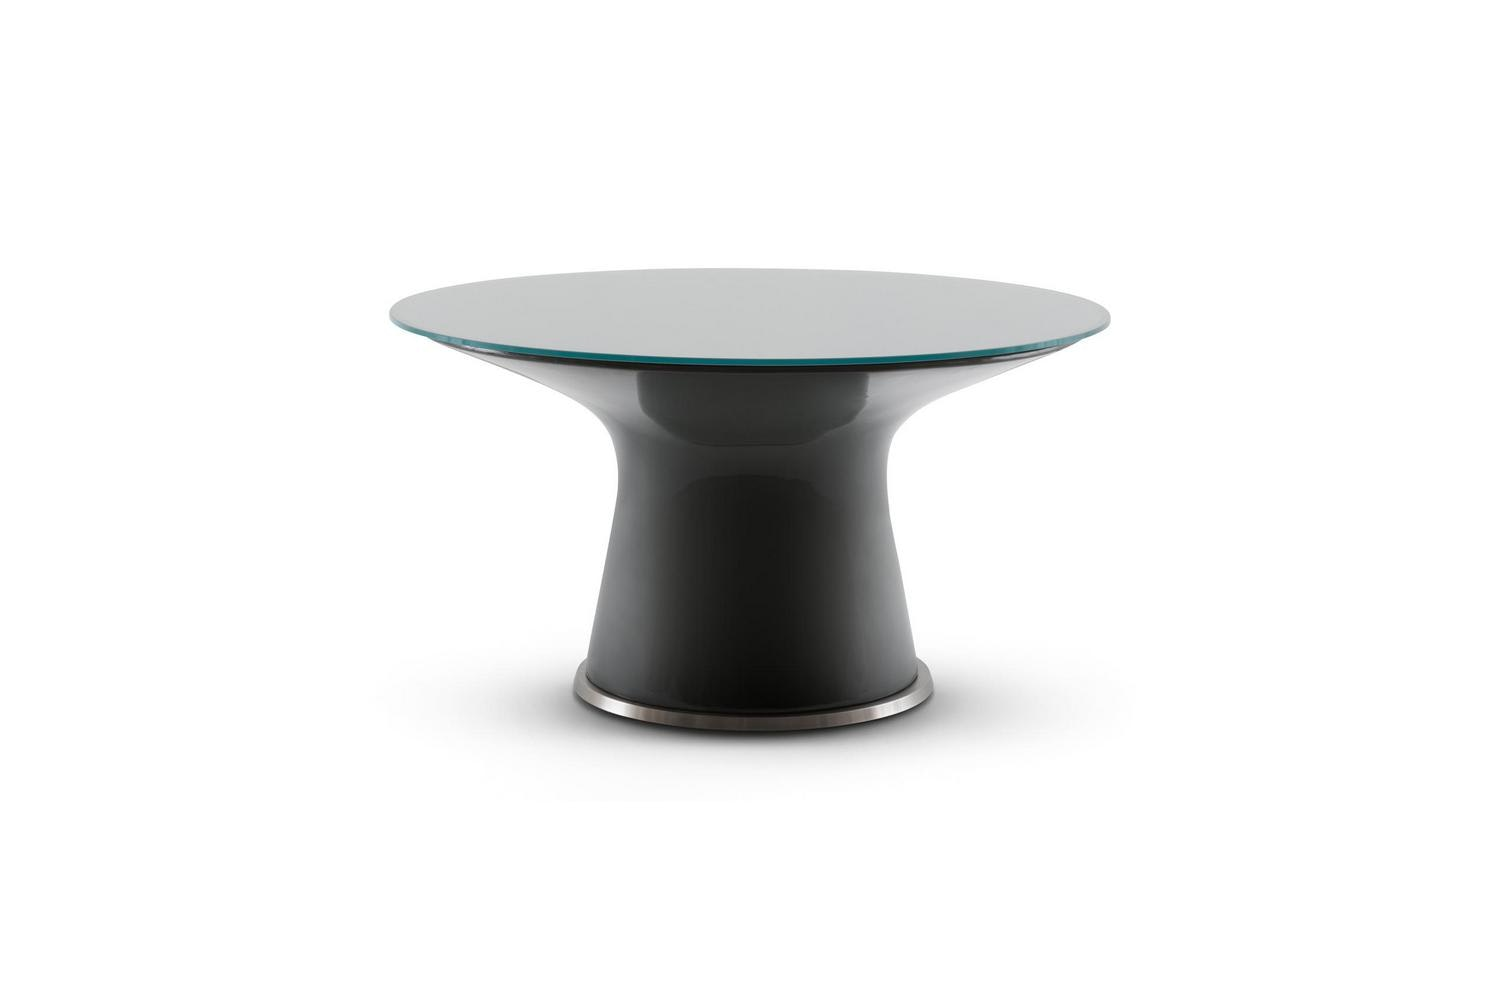 390 Lebeau Table by Patrick Jouin for Cassina